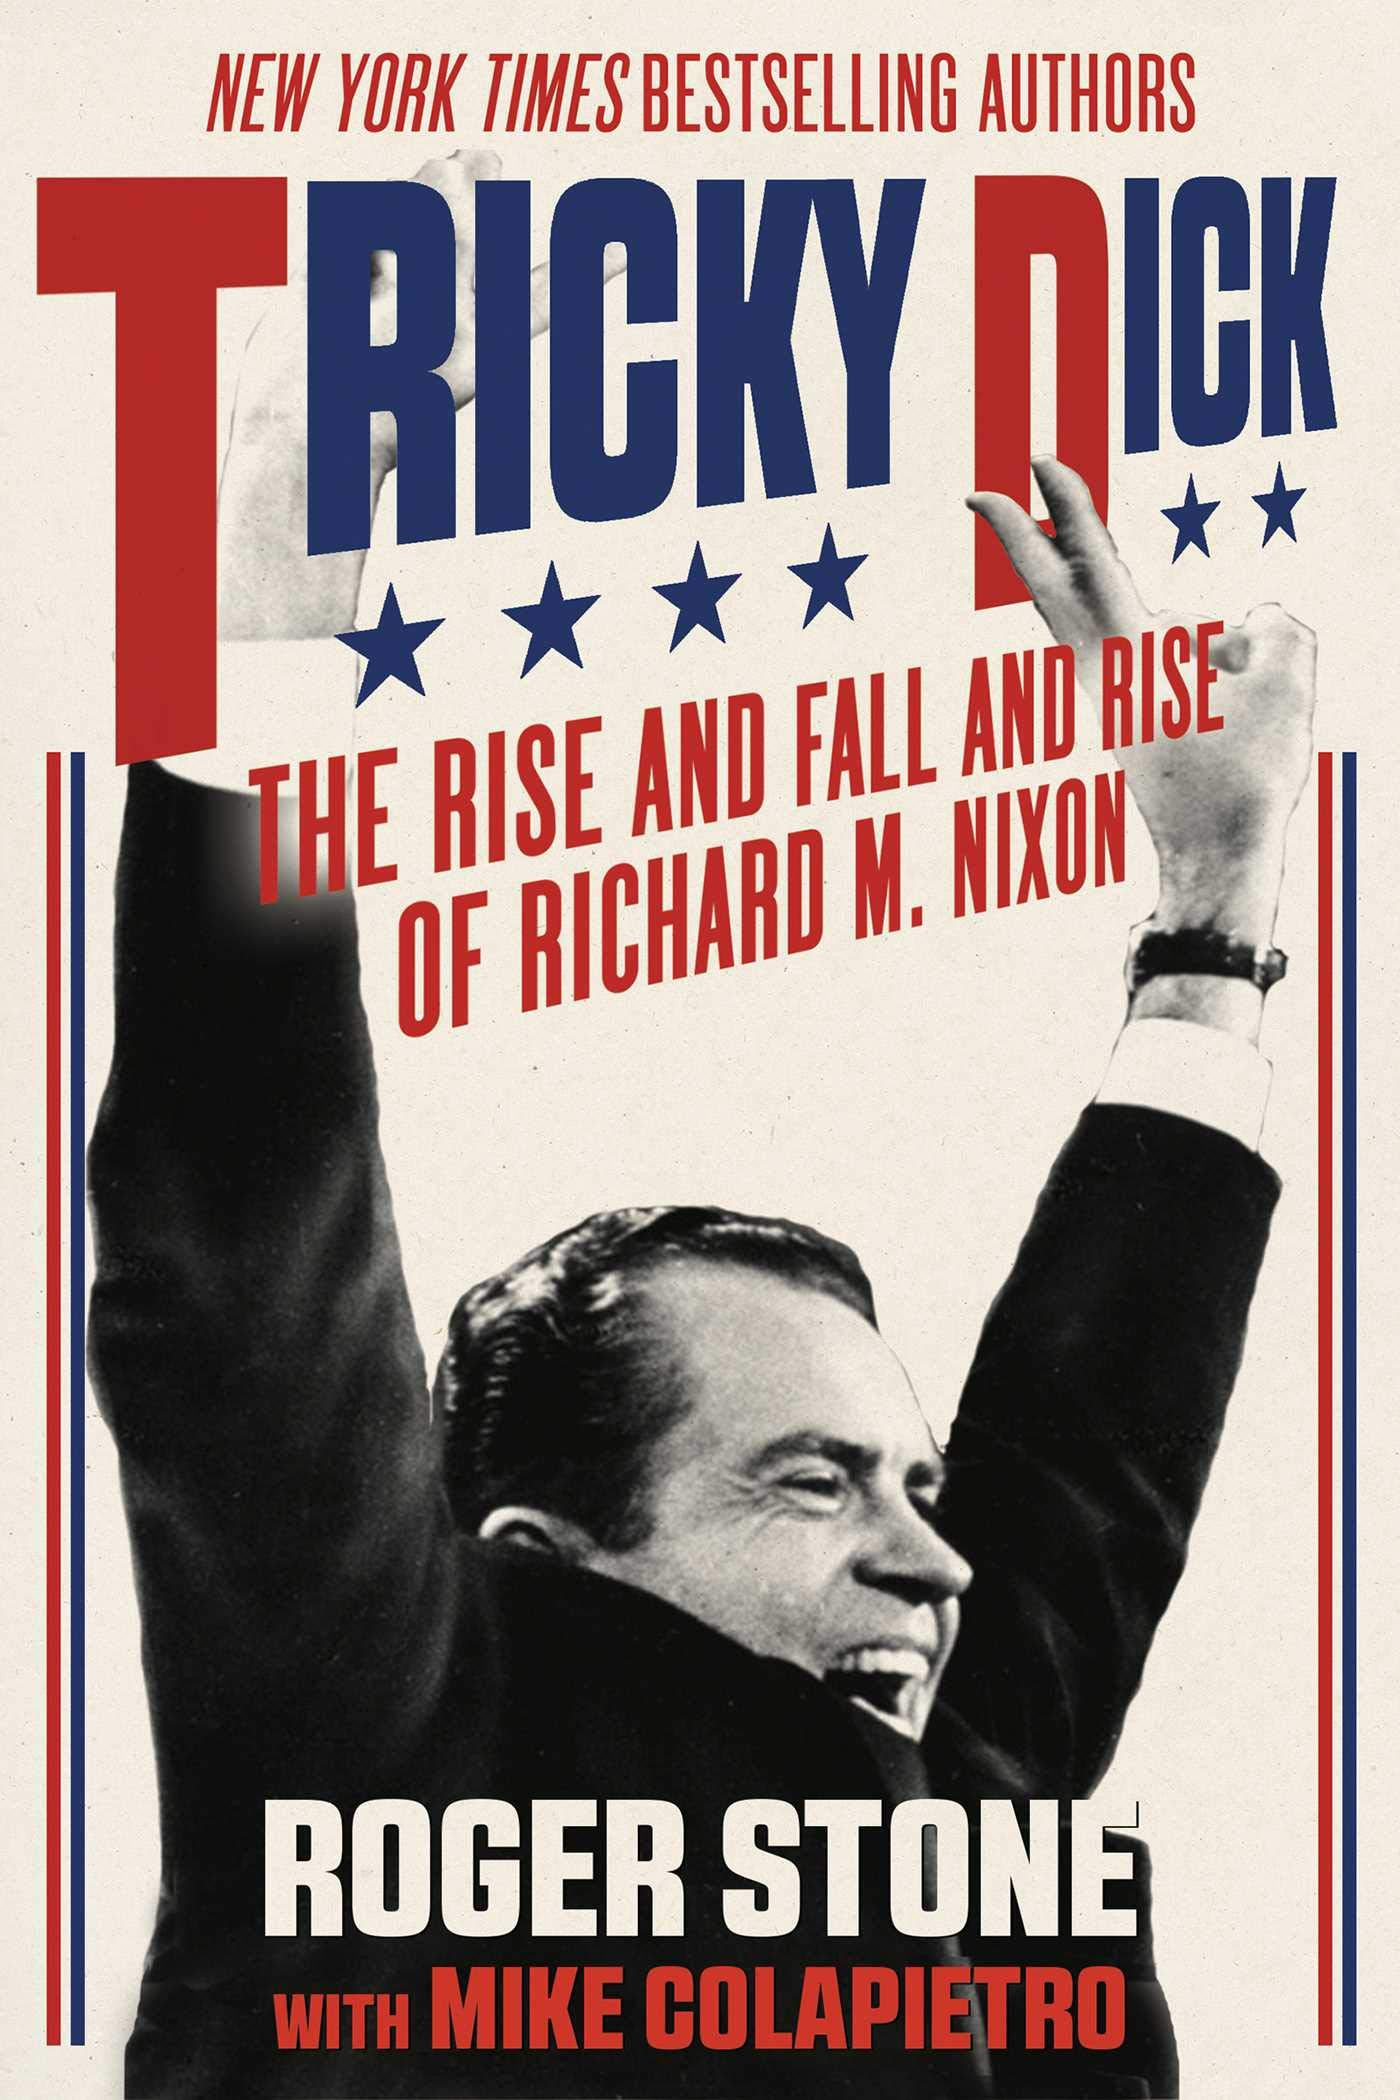 Image result for IMAGES OF NATIONAL REVIEW WITH NIXON ON COVER